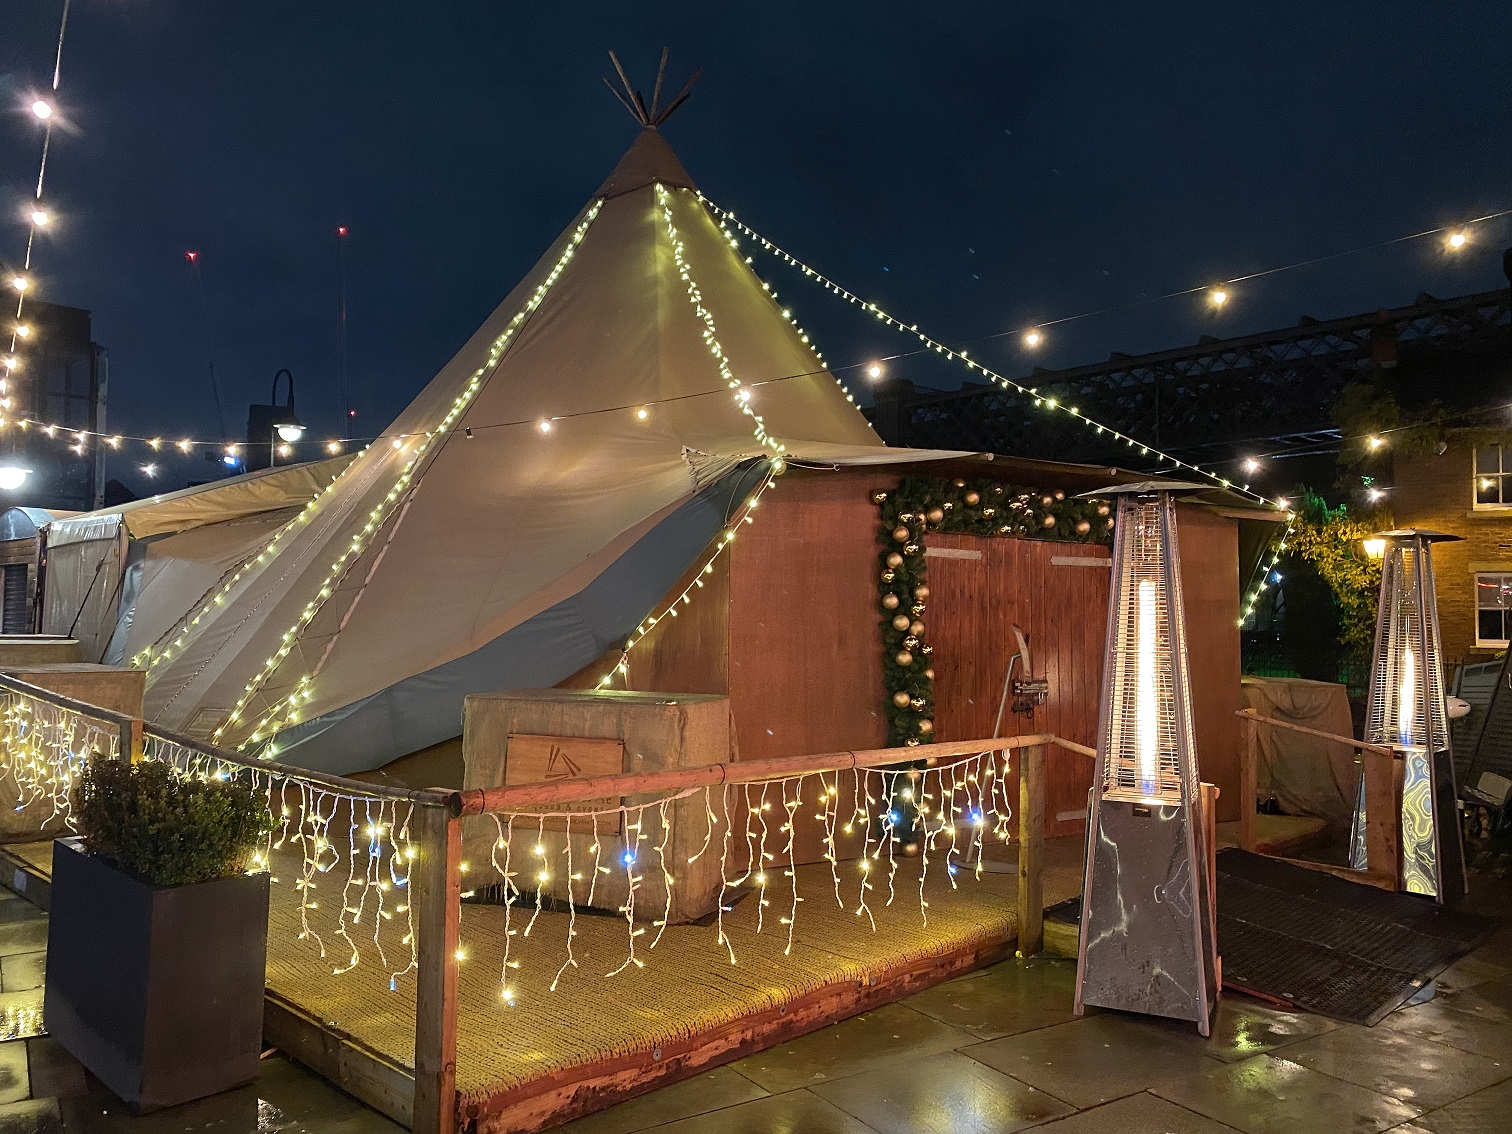 The quirky tent in Manchester City Centre all lit up for the Christmas party Milly helped put together!